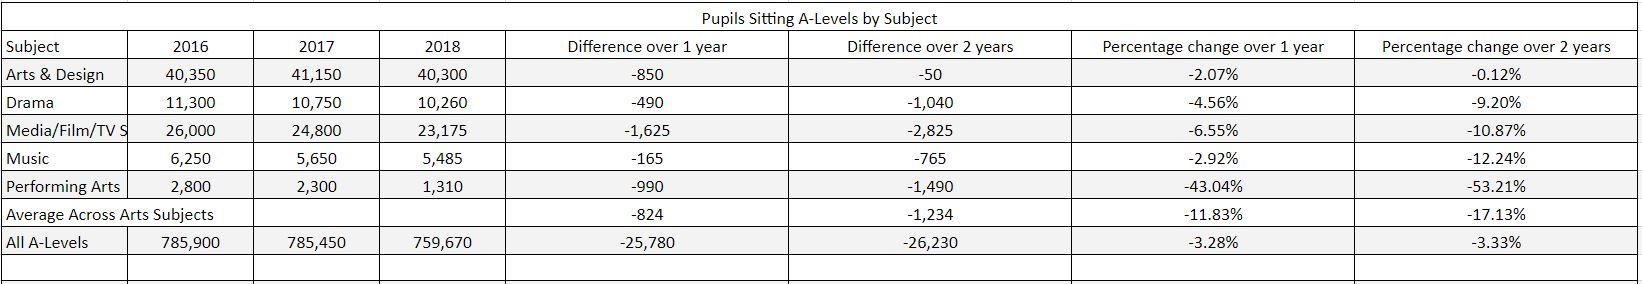 Pupils sitting A-Levels by Subject